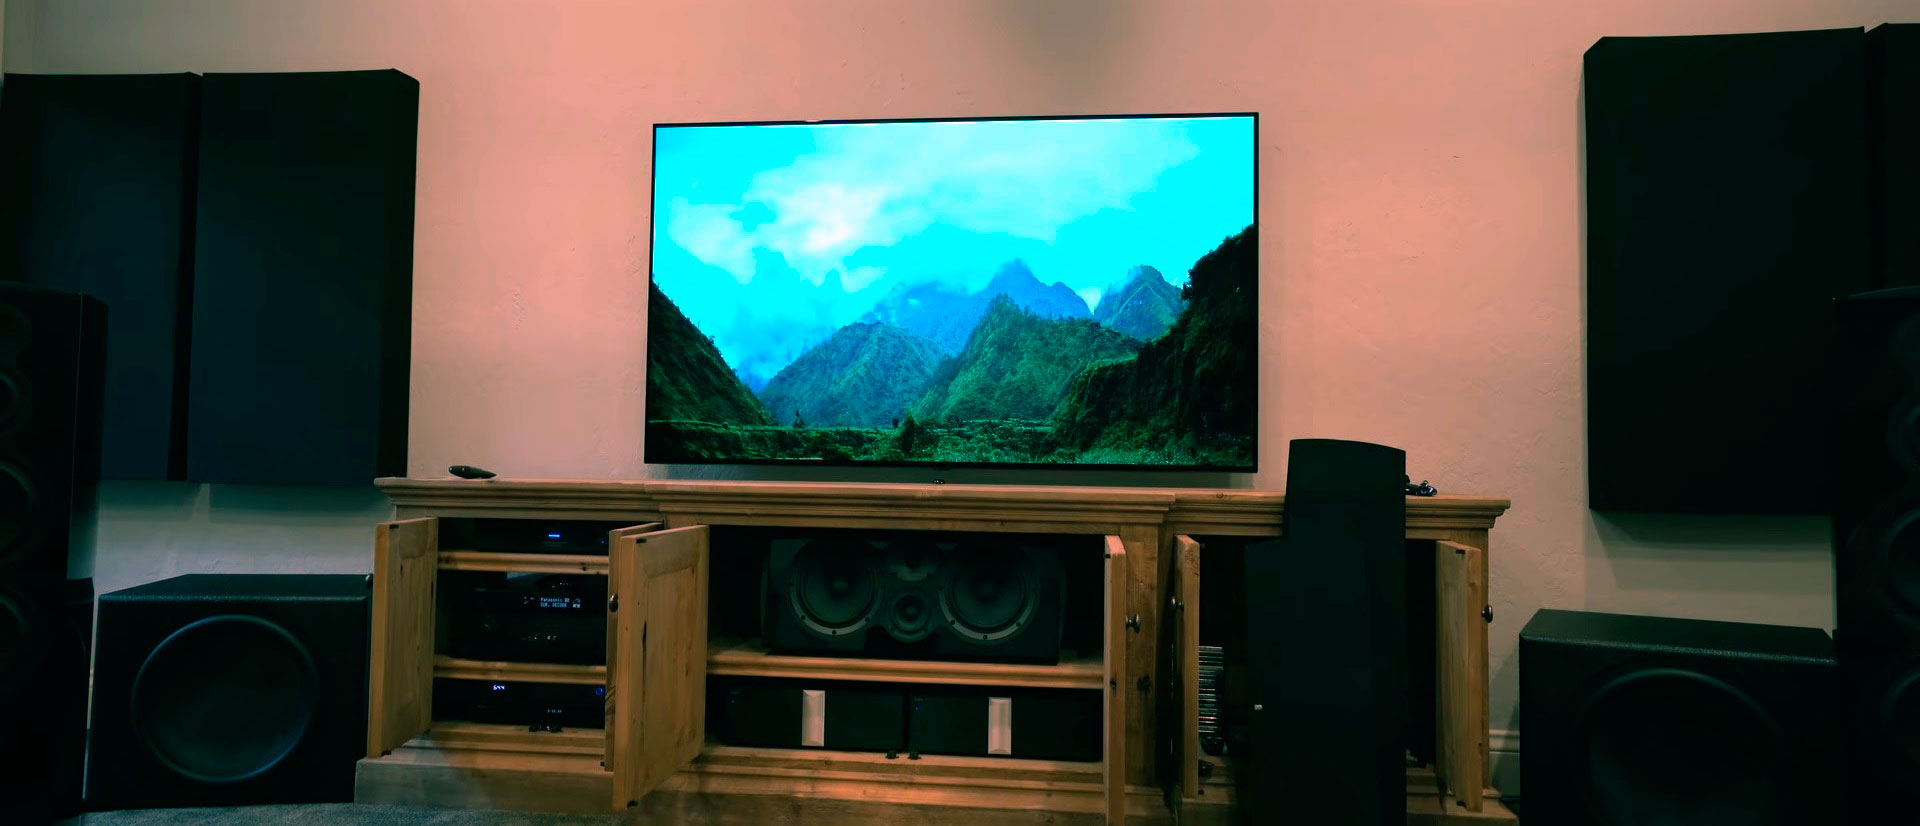 receivers and TV picture quality